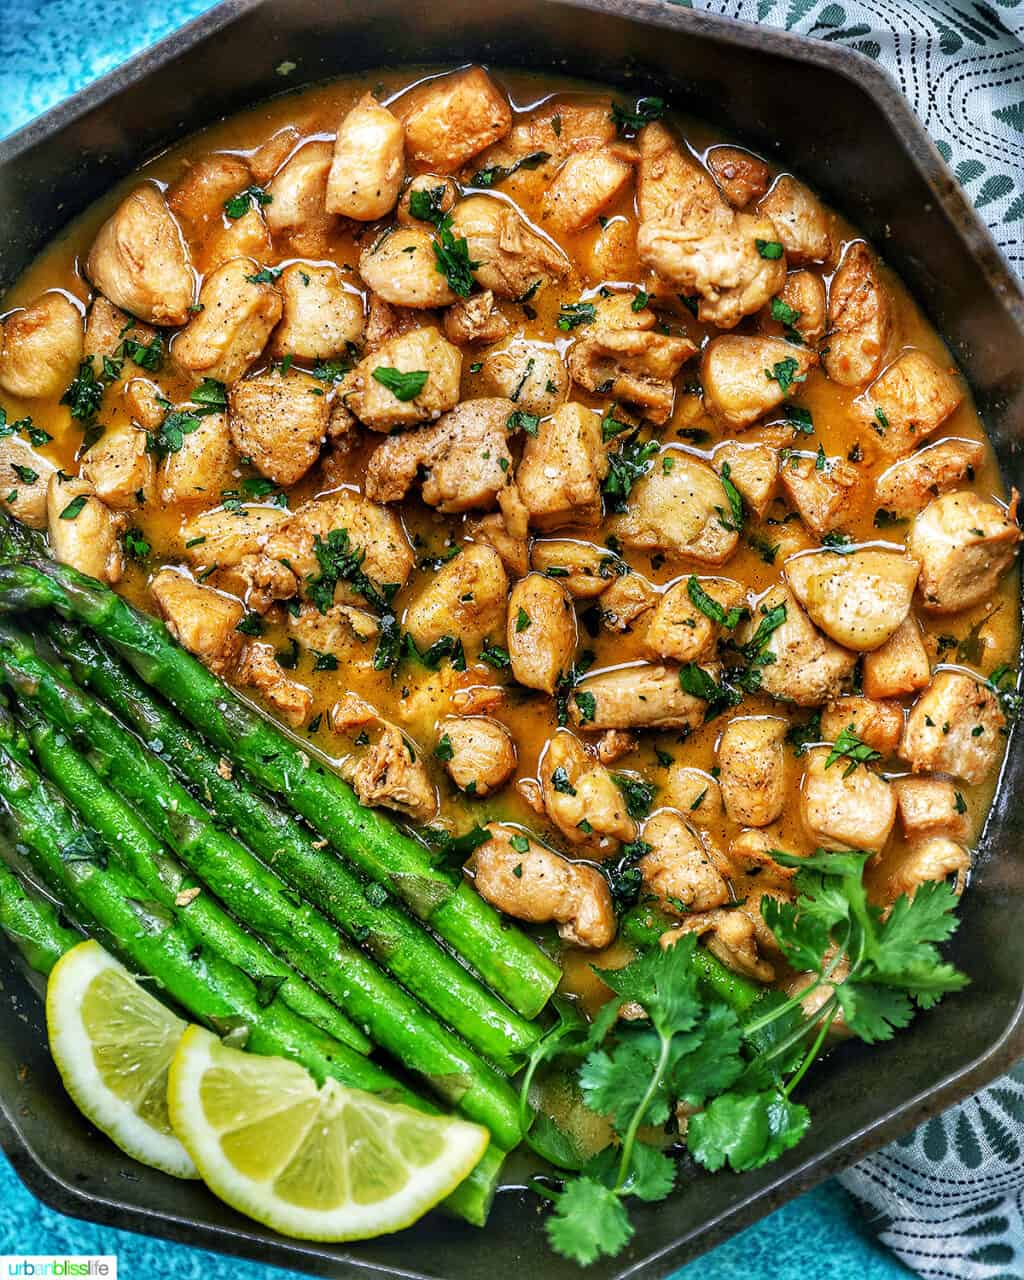 soy garlic butter chicken bites with asparagus